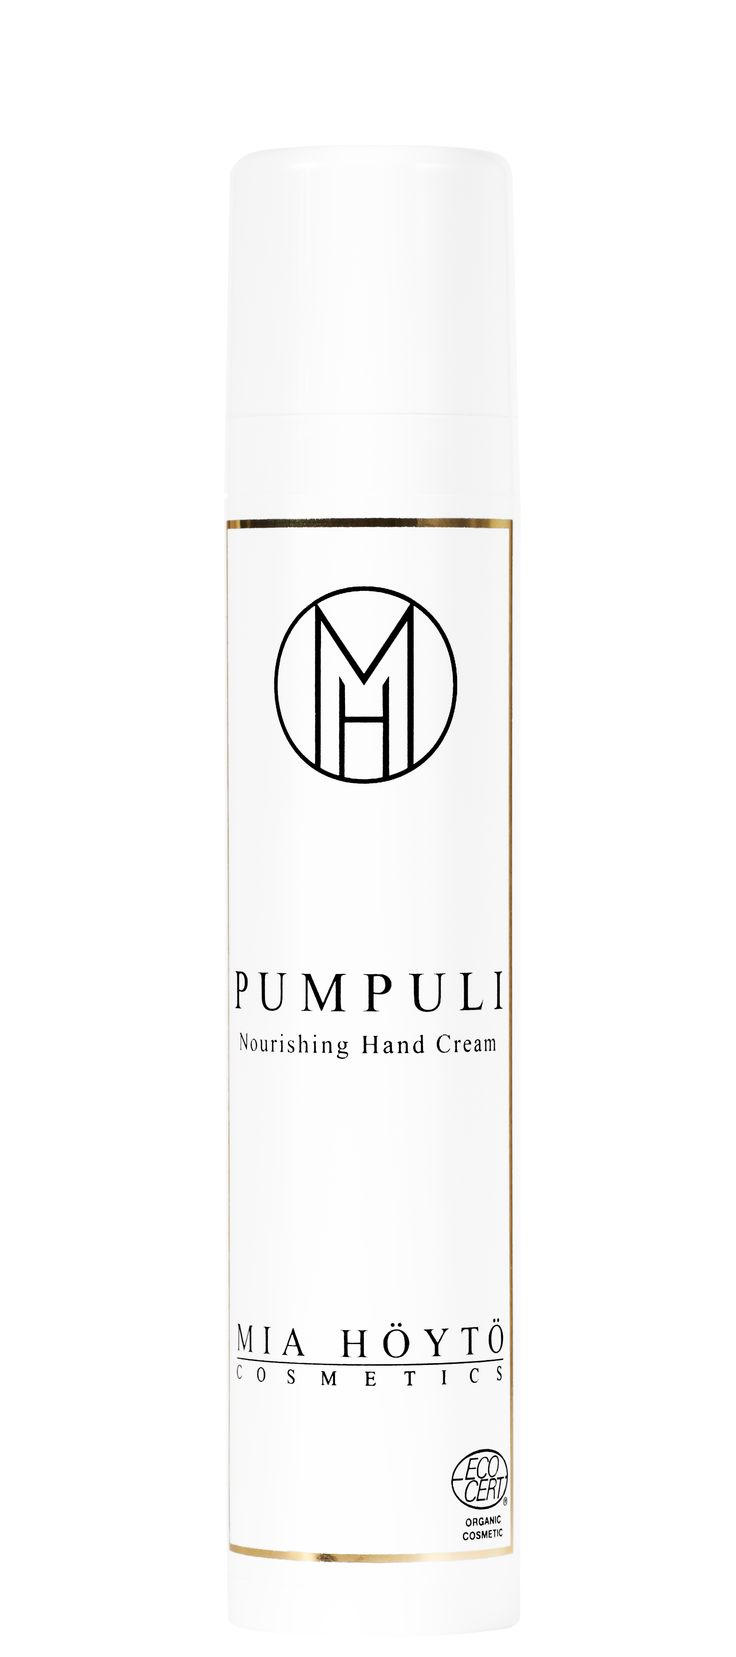 Pumpuli Hand Cream